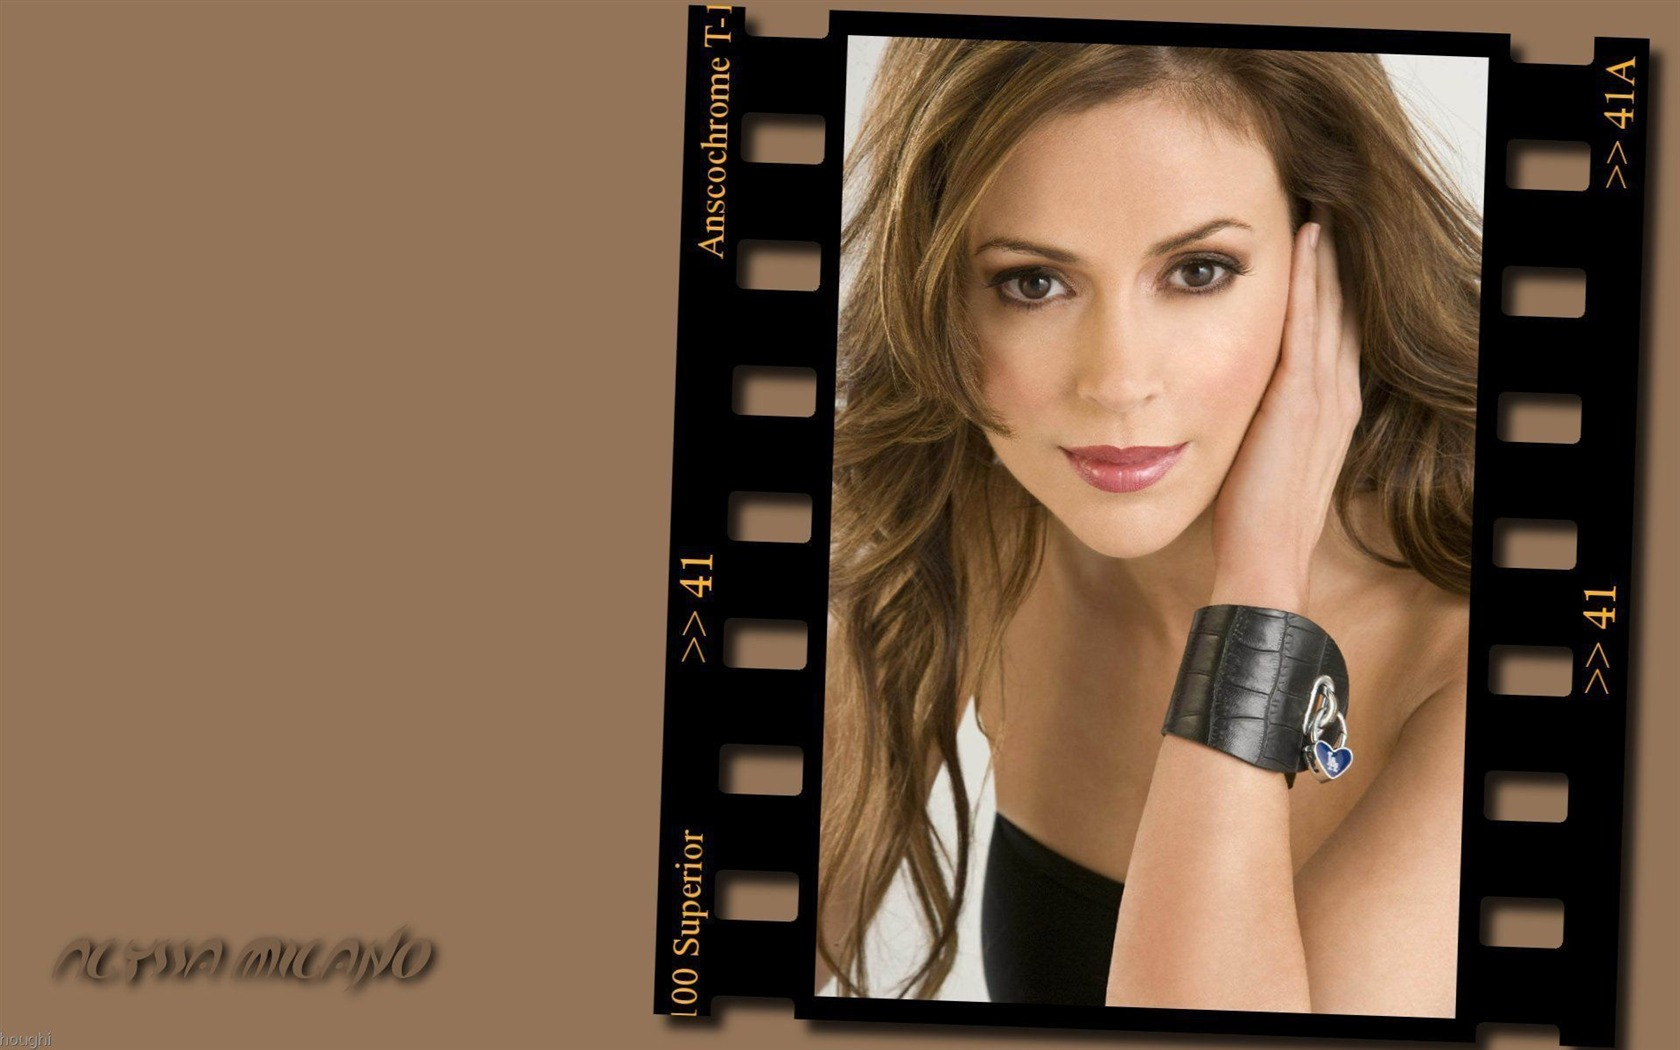 Alyssa Milano #045 - 1680x1050 Wallpapers Pictures Photos Images